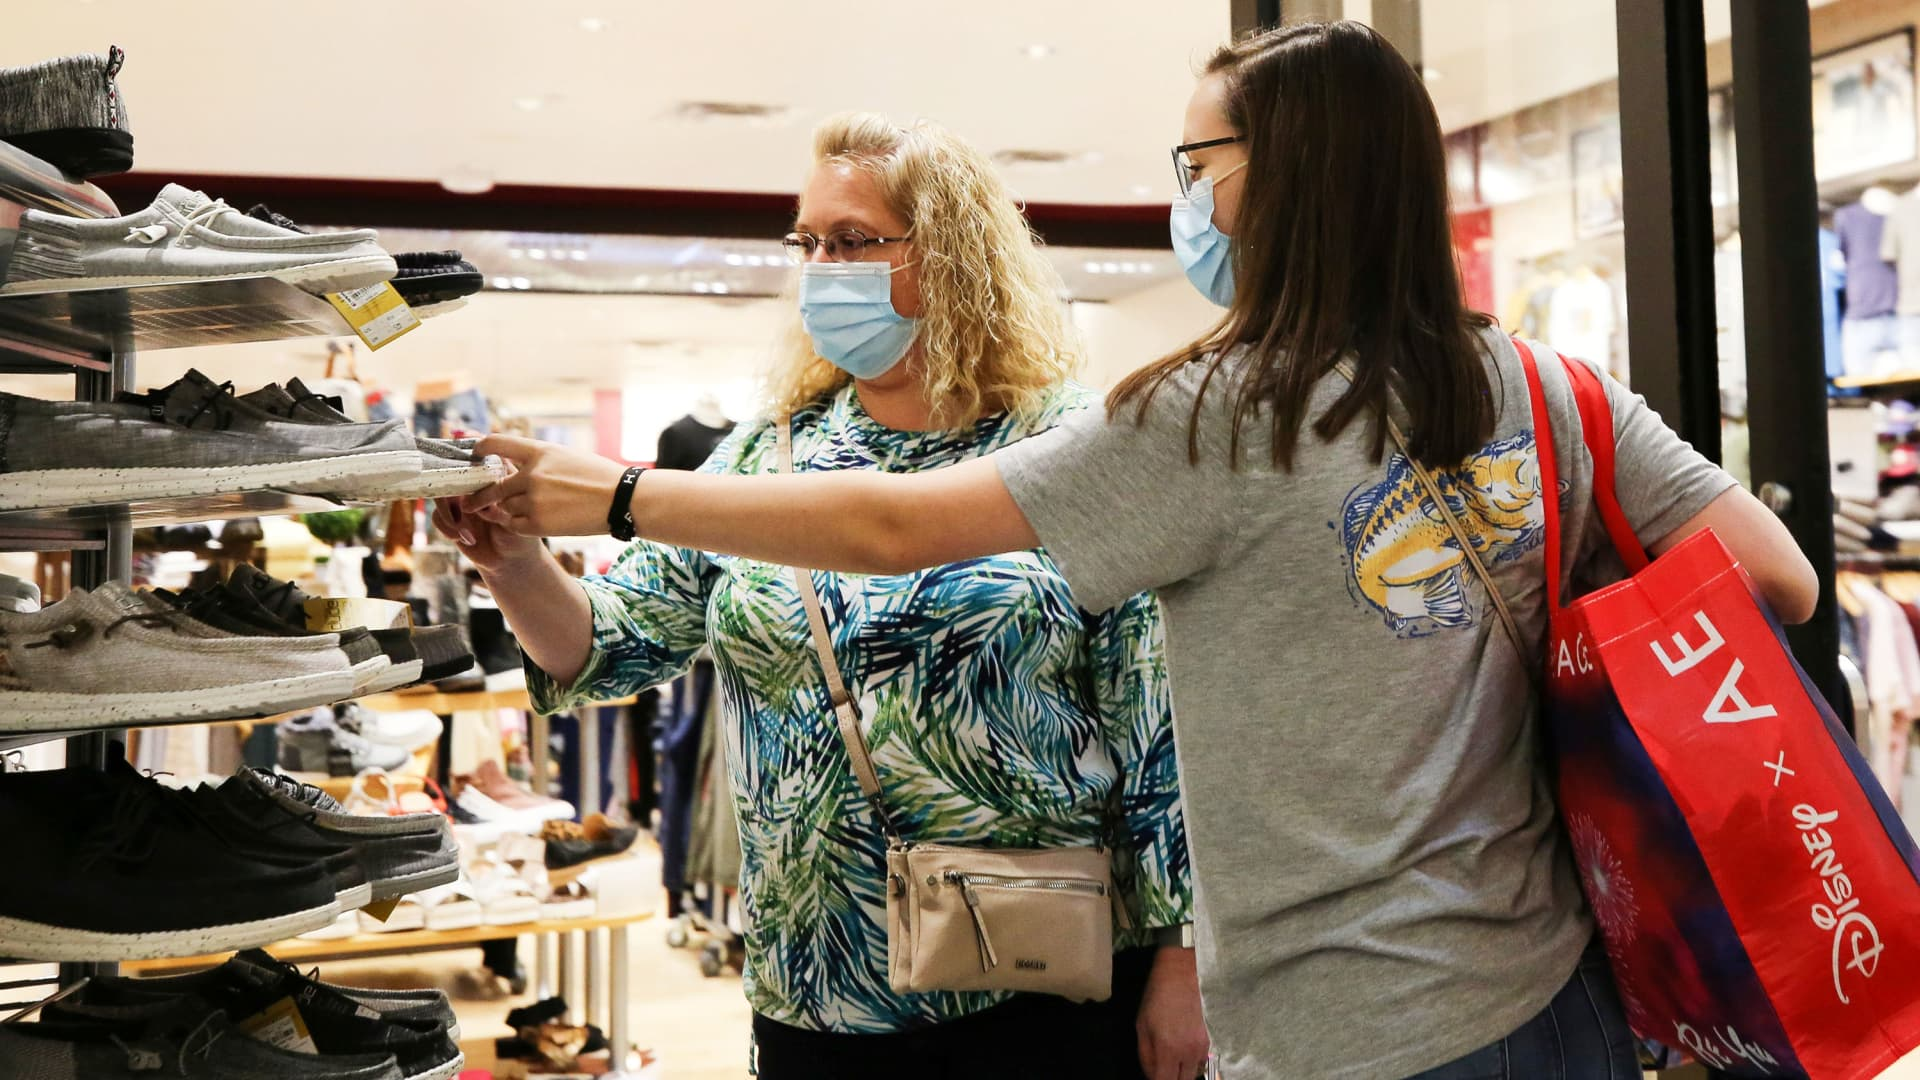 Shoppers look at shoes at Coastal Grand Mall on Black Friday, as the coronavirus disease (COVID-19) pandemic continues, in Myrtle Beach, South Carolina, November 27, 2020.